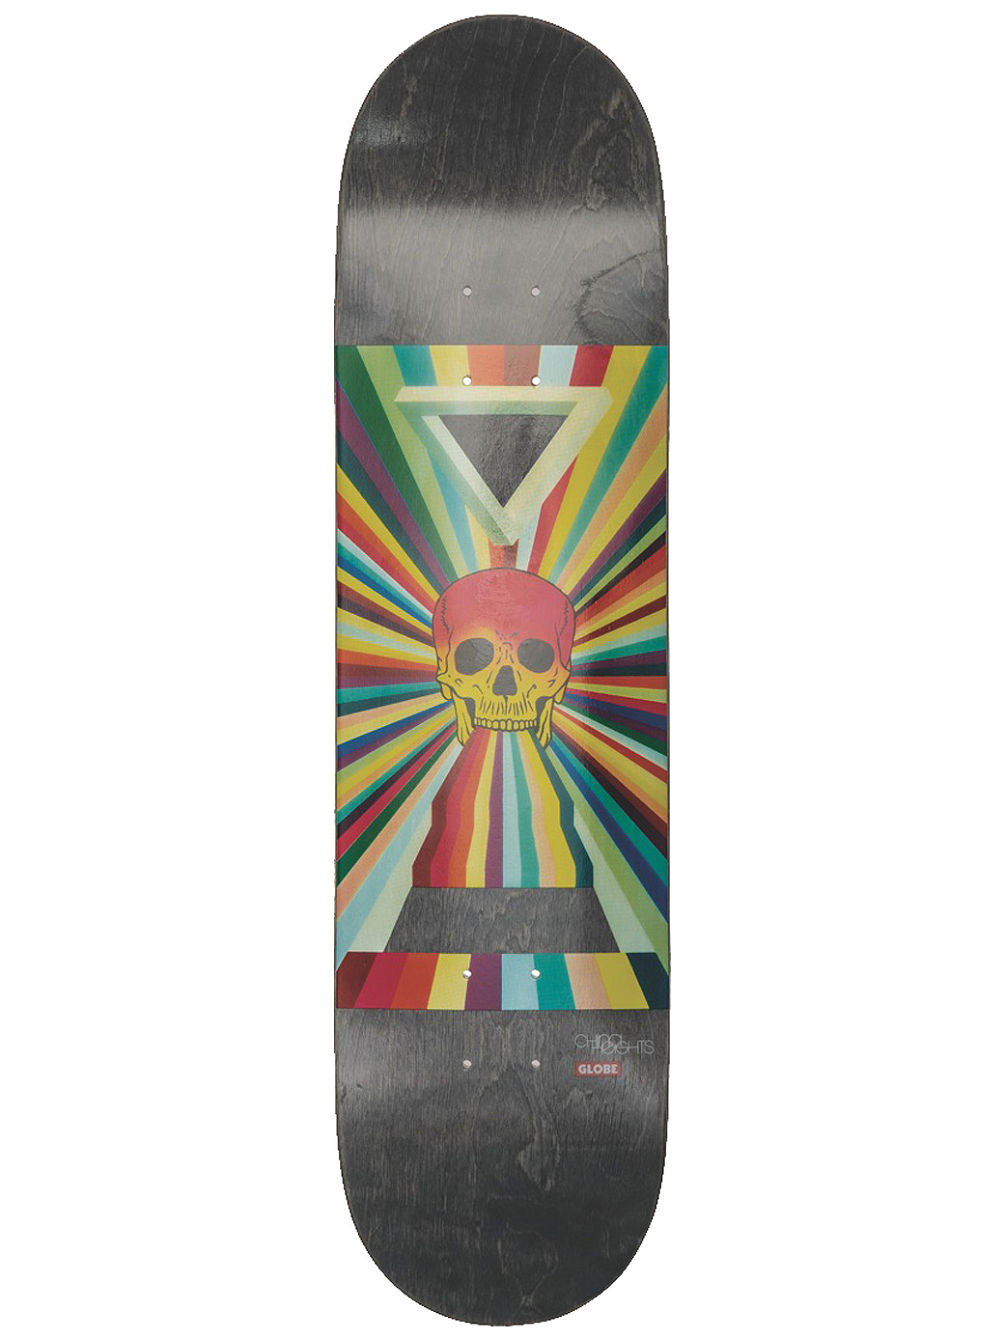 "China Heights 8.0"" x 31.6"" Skate Deck"